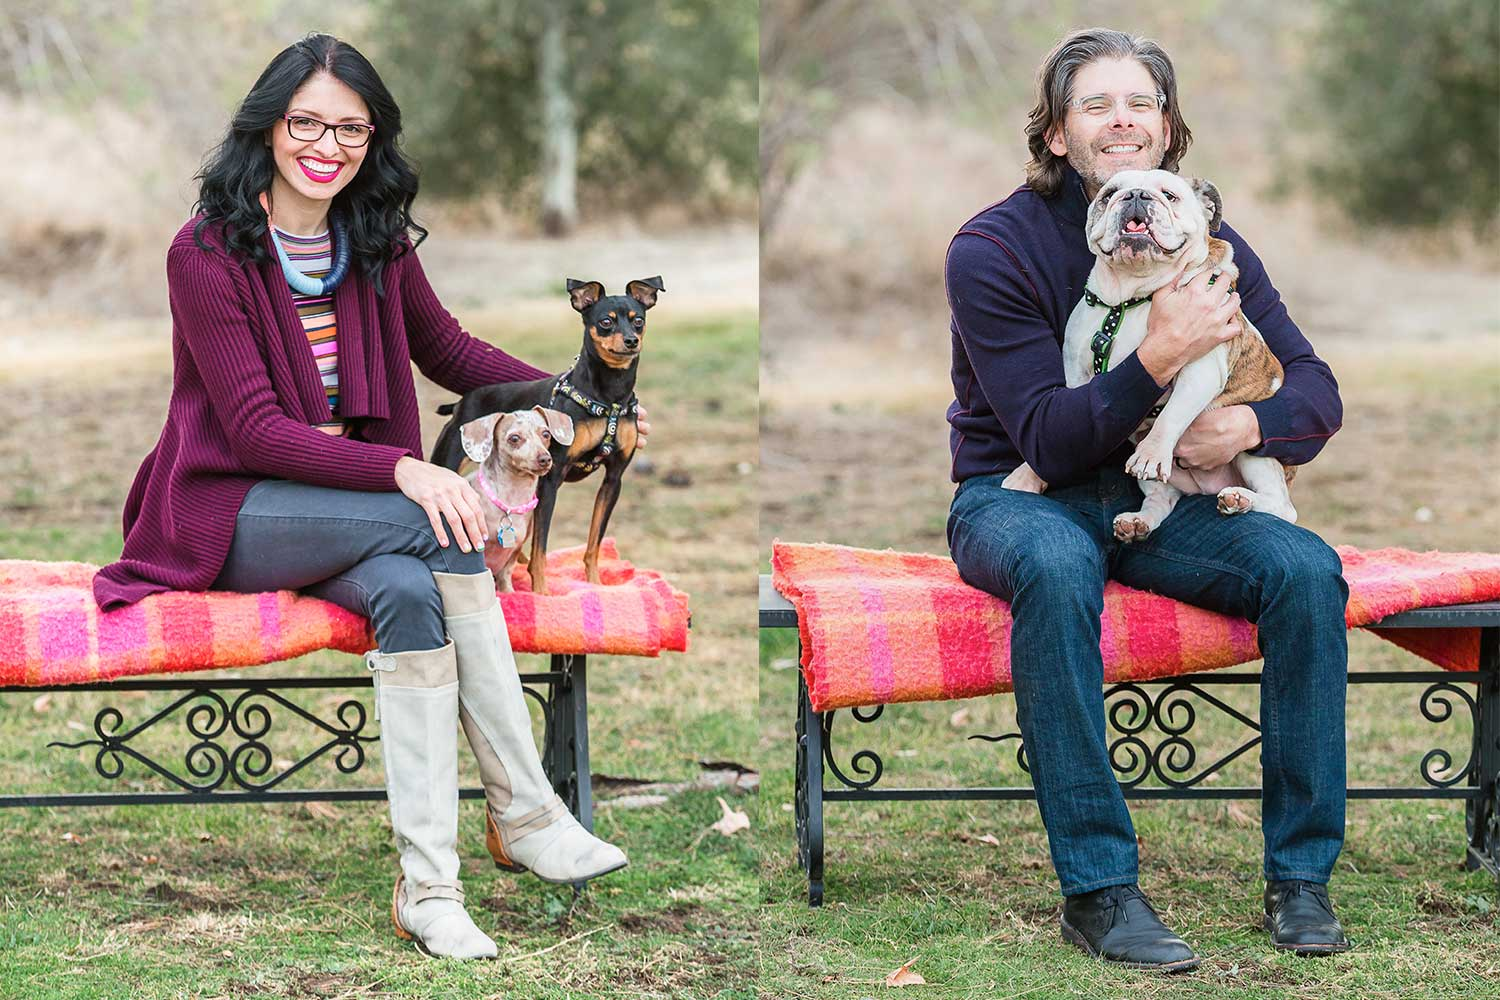 Jenna-Pilant-Design+Style-Blogger-How-To-Style-A-Family-Photoshoot-With-Dogs-2